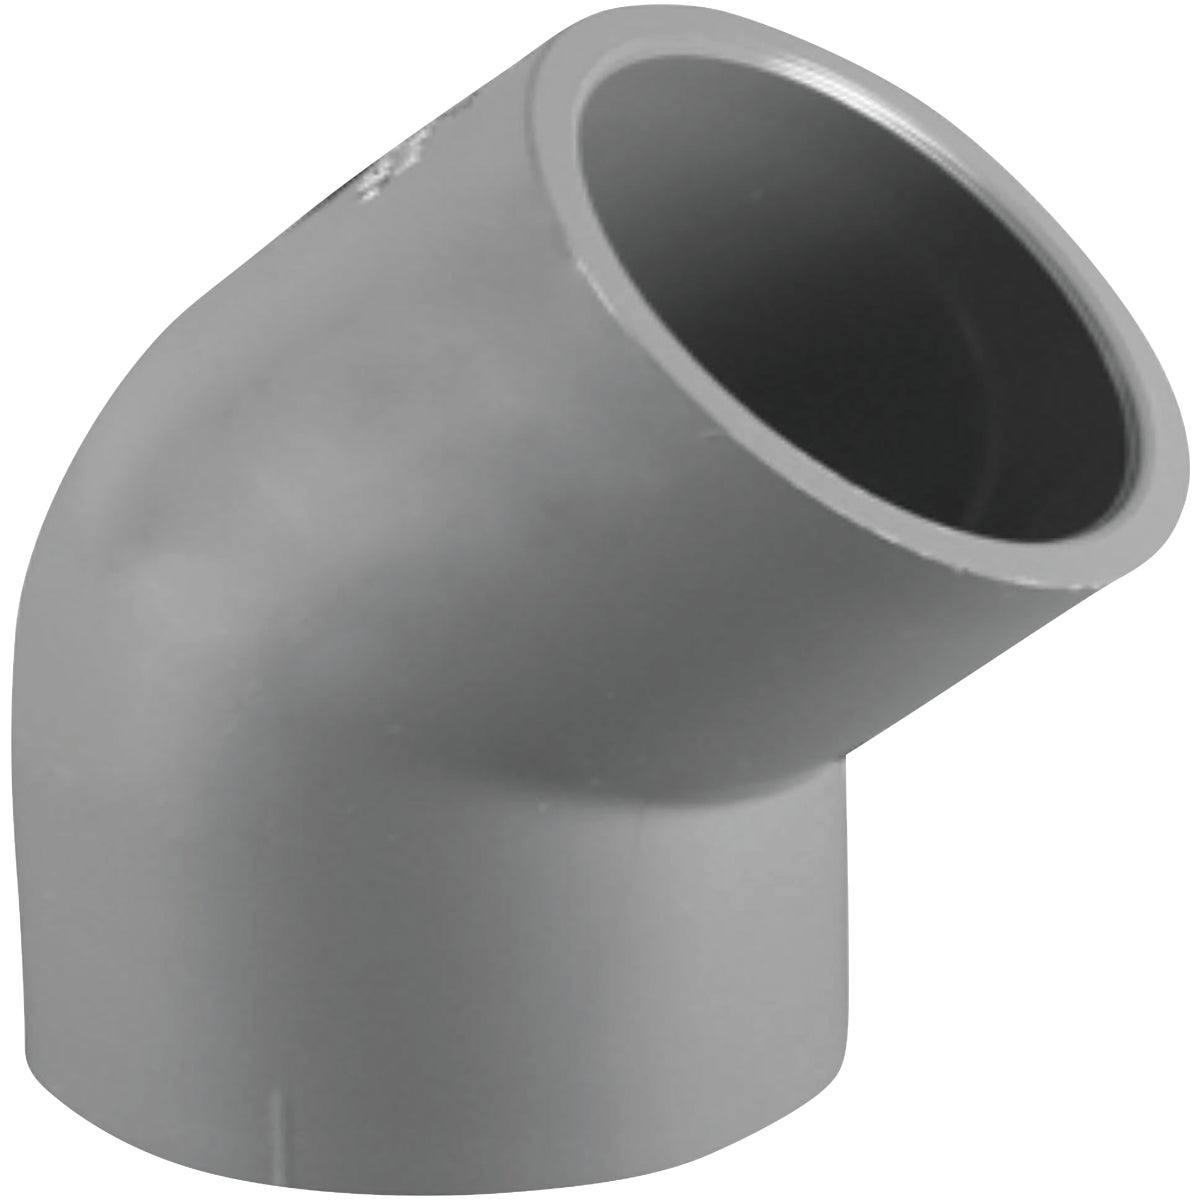 "1"" 45D SCH80 PVC ELBOW - 306108 by Genova Inc"